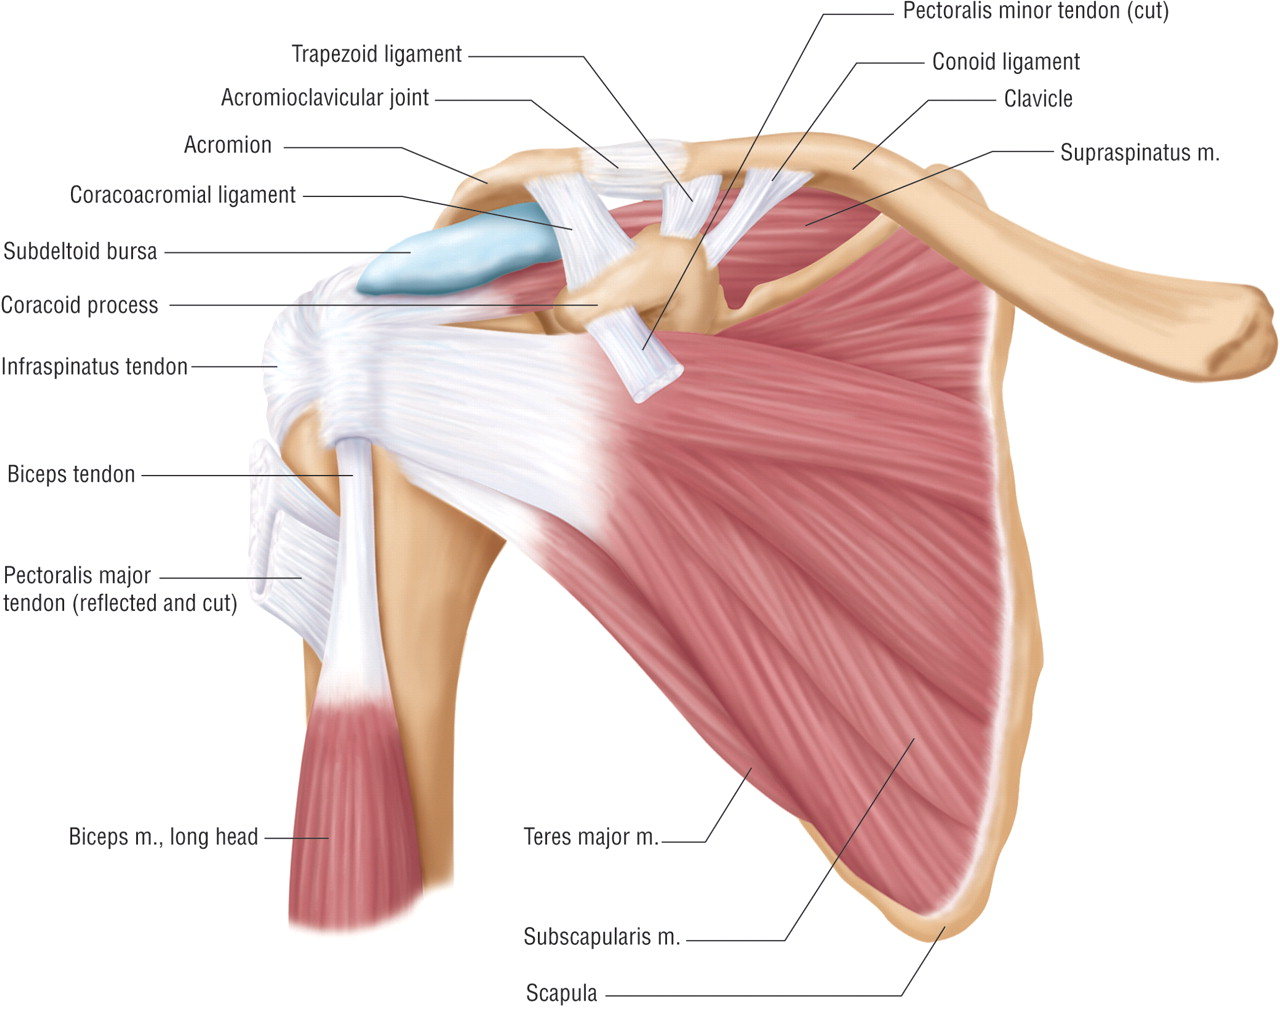 shockwave therapy for rotator cuff and supraspinatus impingement